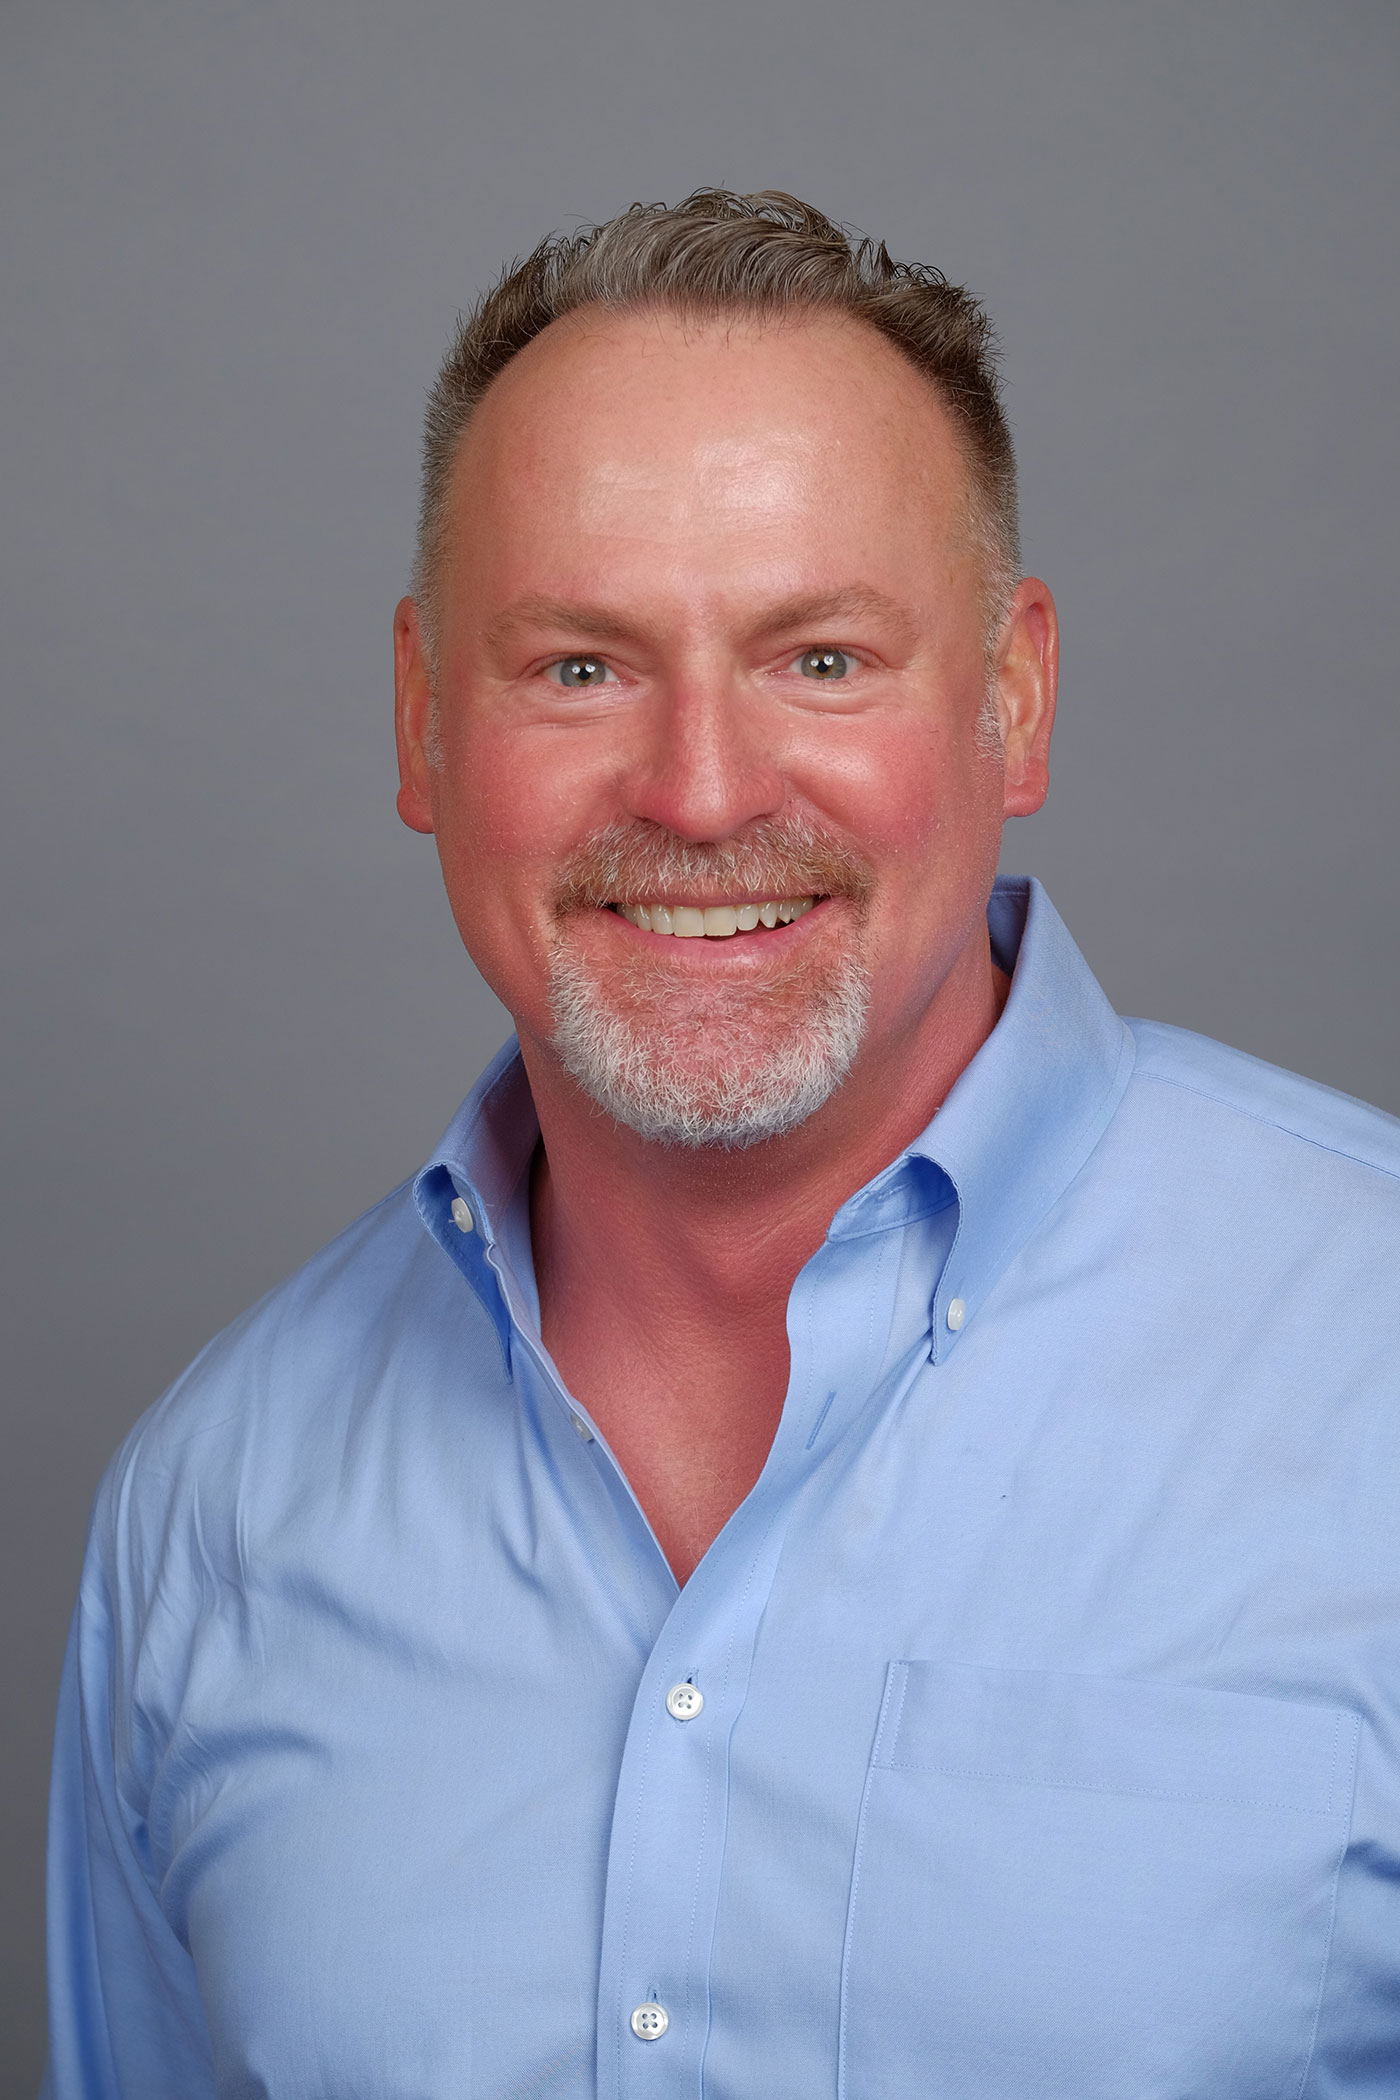 James Sanford, Vice President of Sales & Support